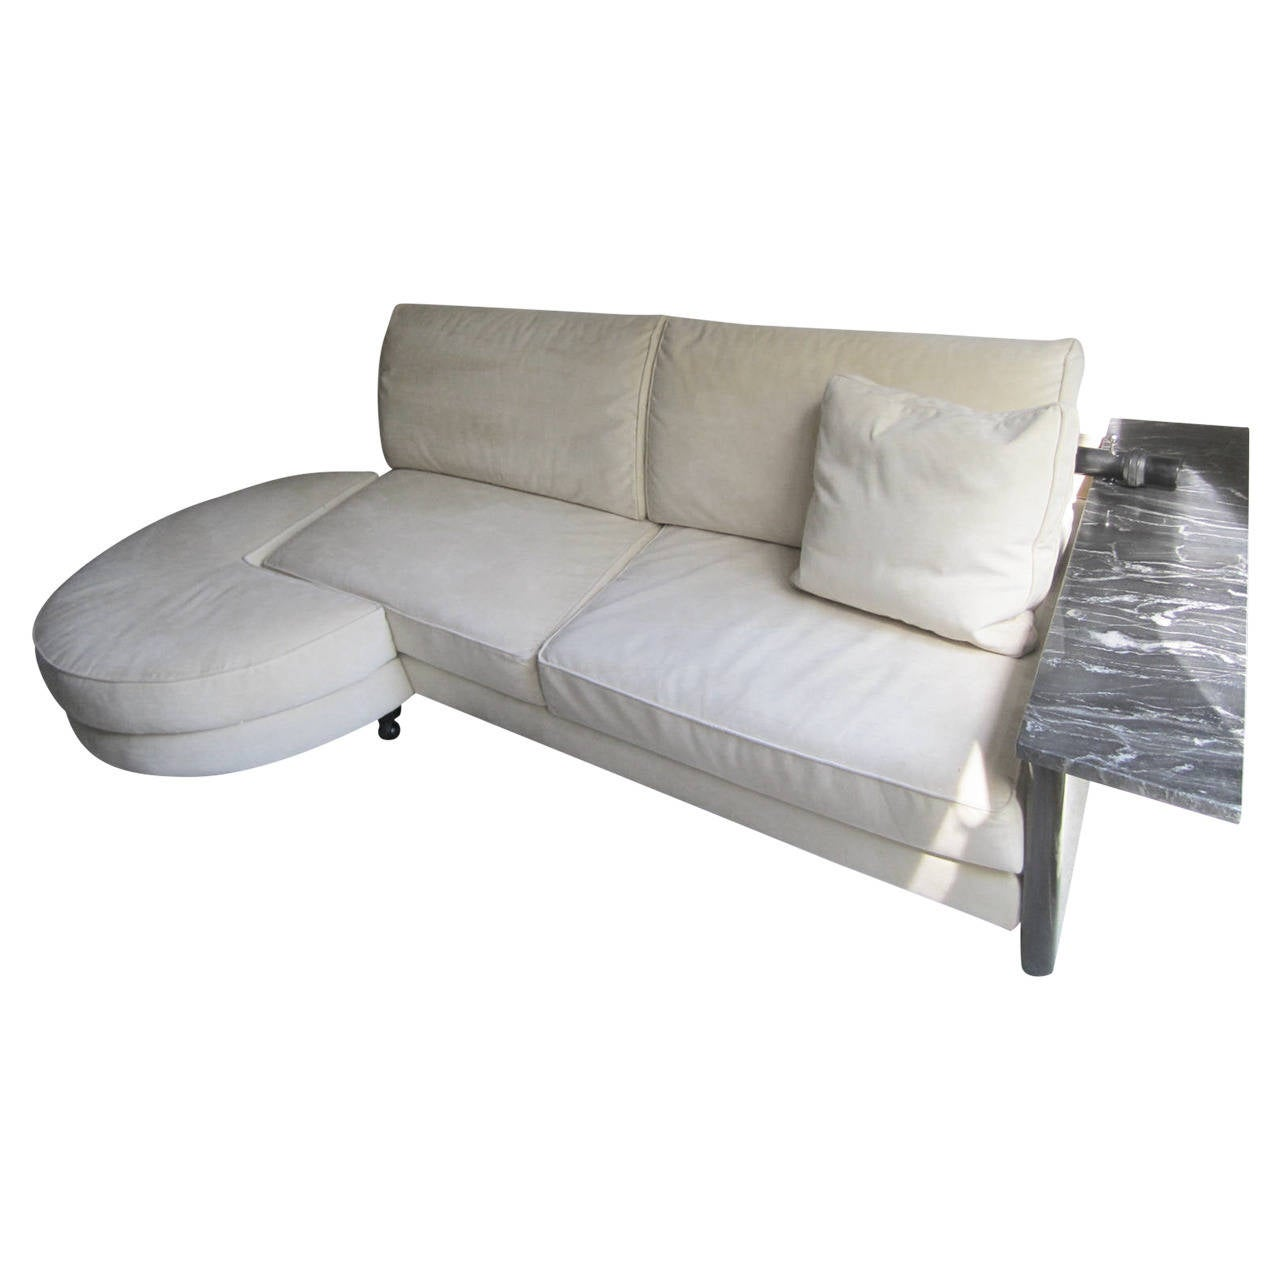 stunning italian arketipo roche bobois two piece sofa mid century modern for sale at 1stdibs. Black Bedroom Furniture Sets. Home Design Ideas